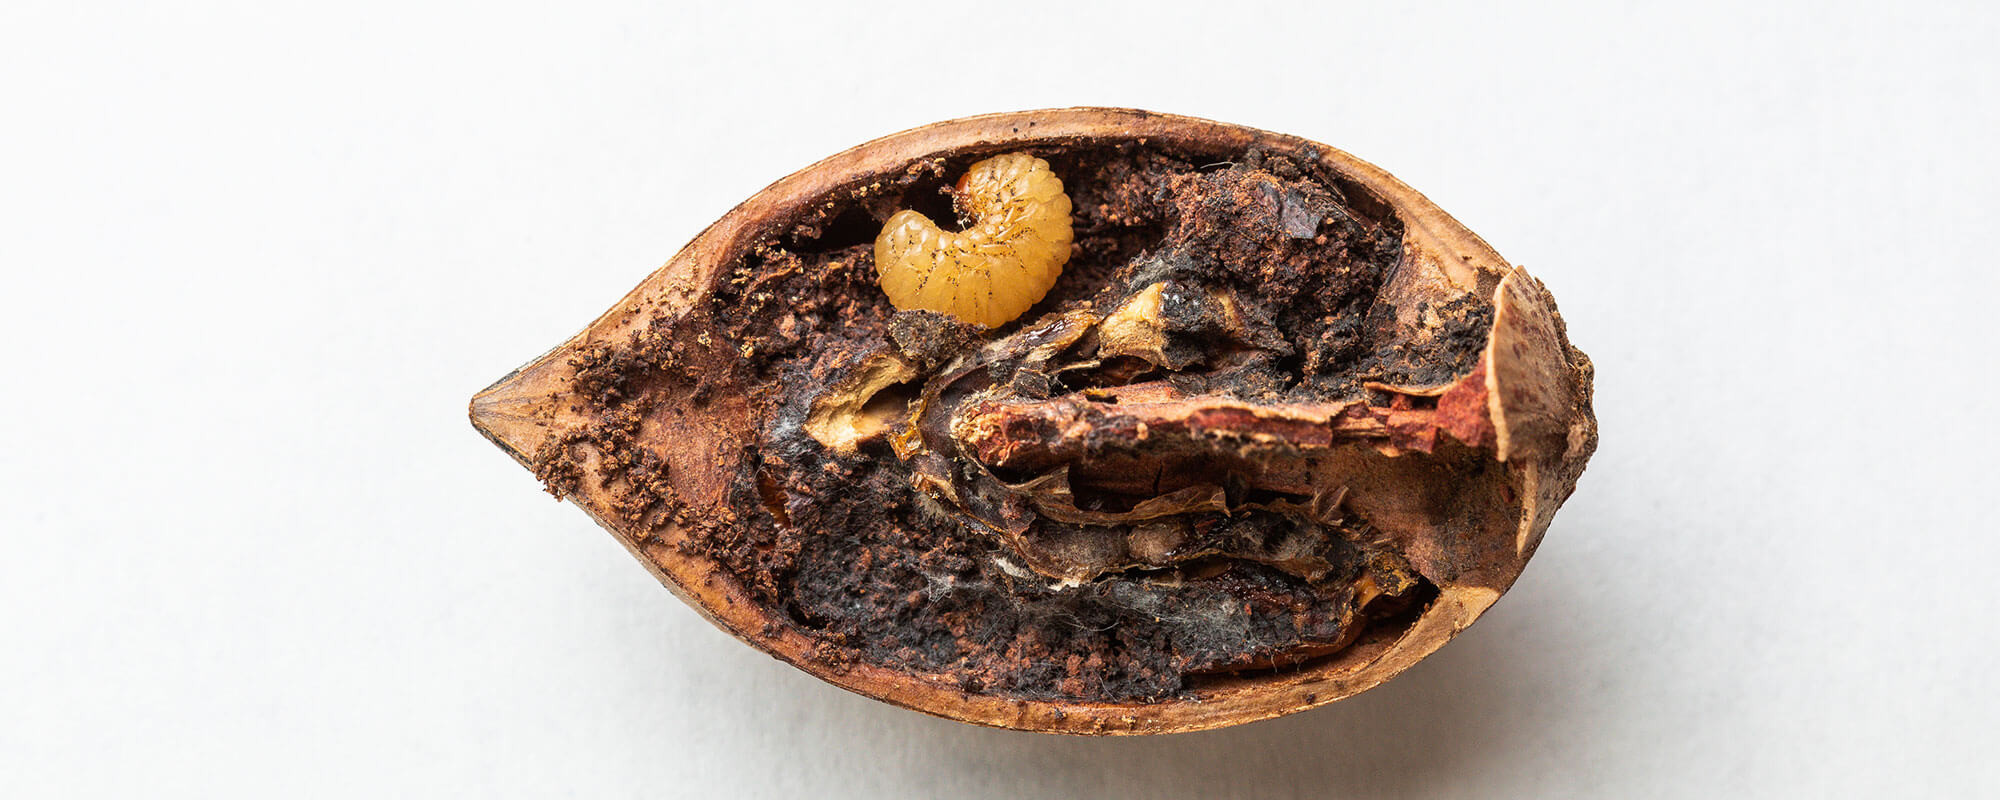 Pecan weevil grub in a nut